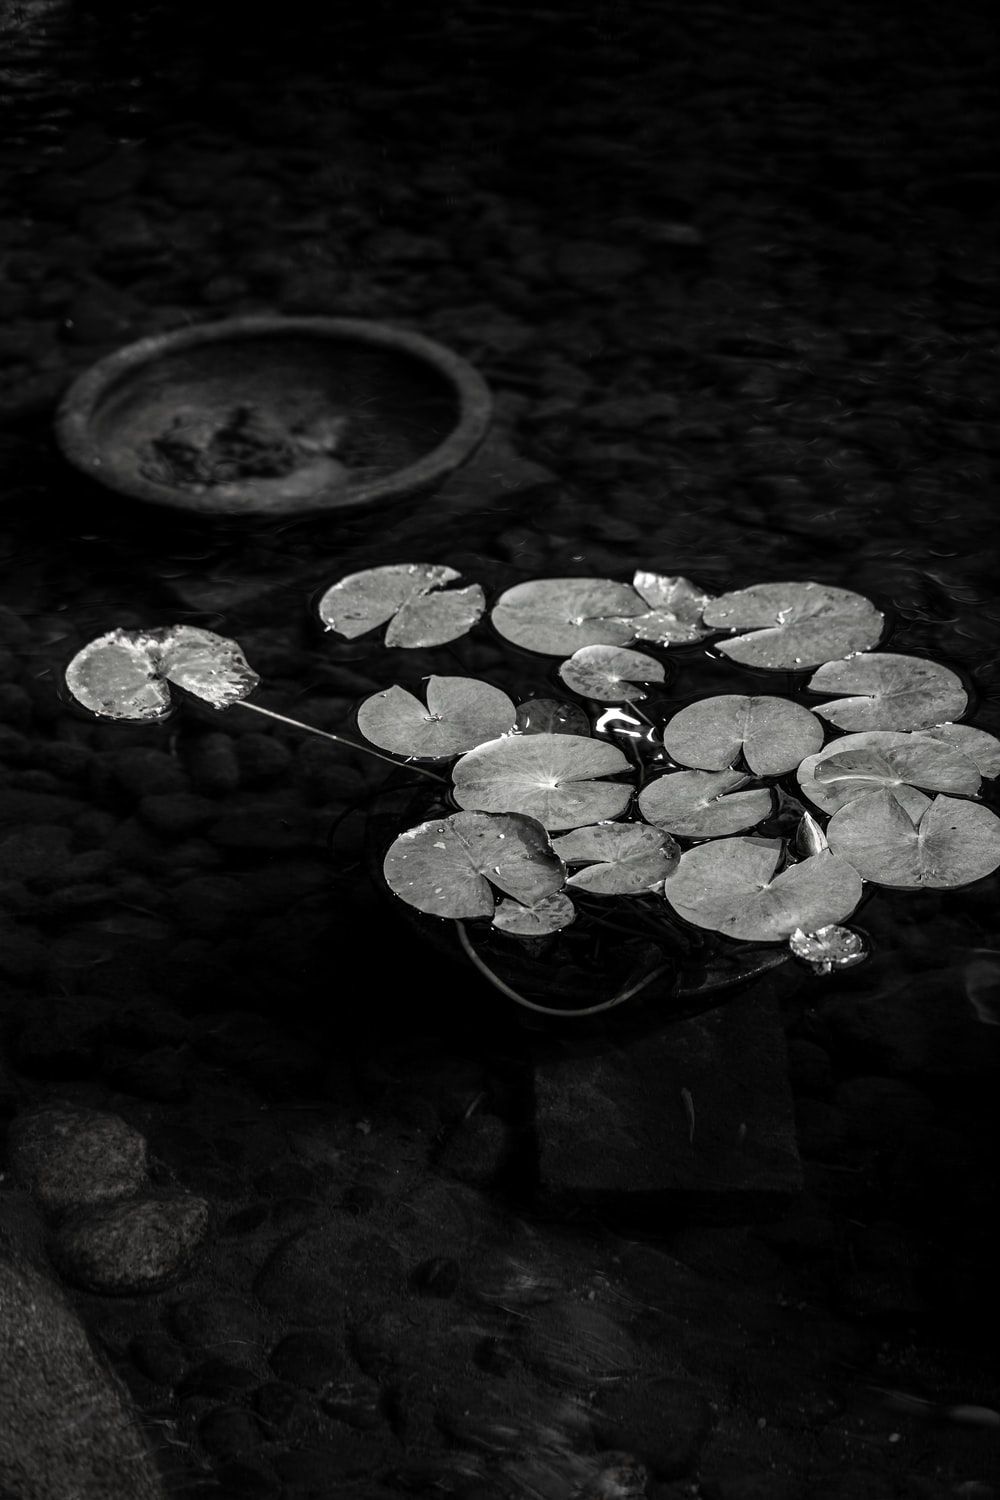 green leaves on water in grayscale photography